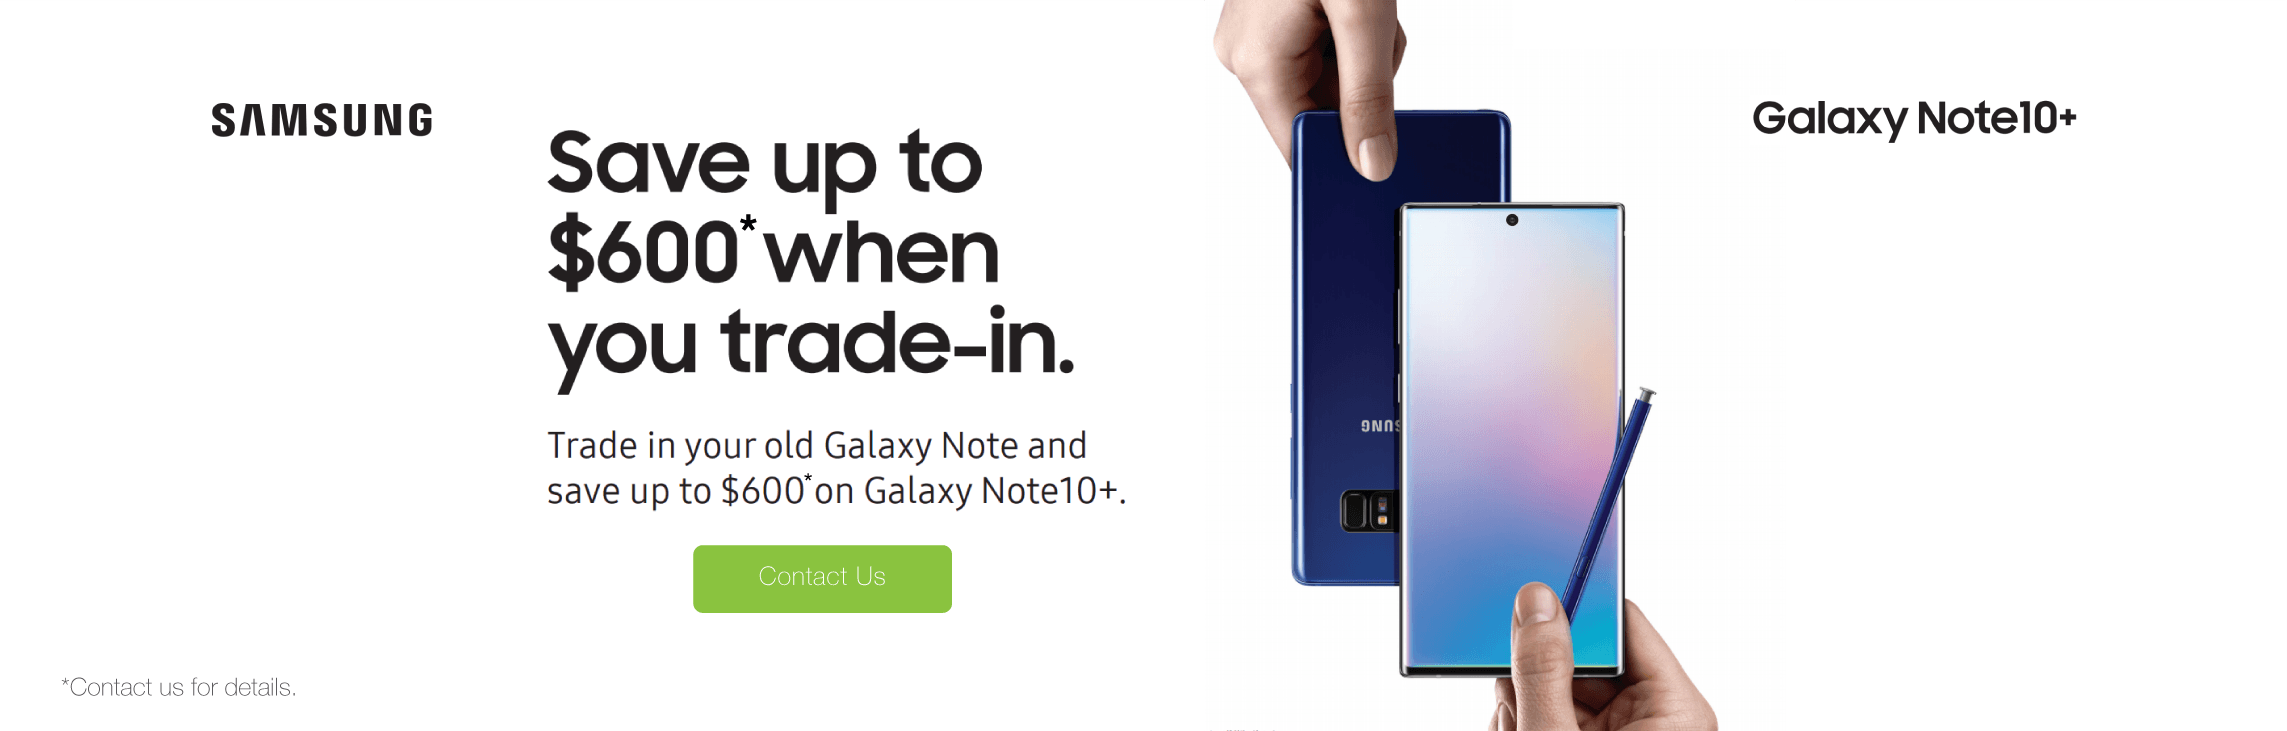 Save up to $600 on Galaxy Note10+ Trade-In